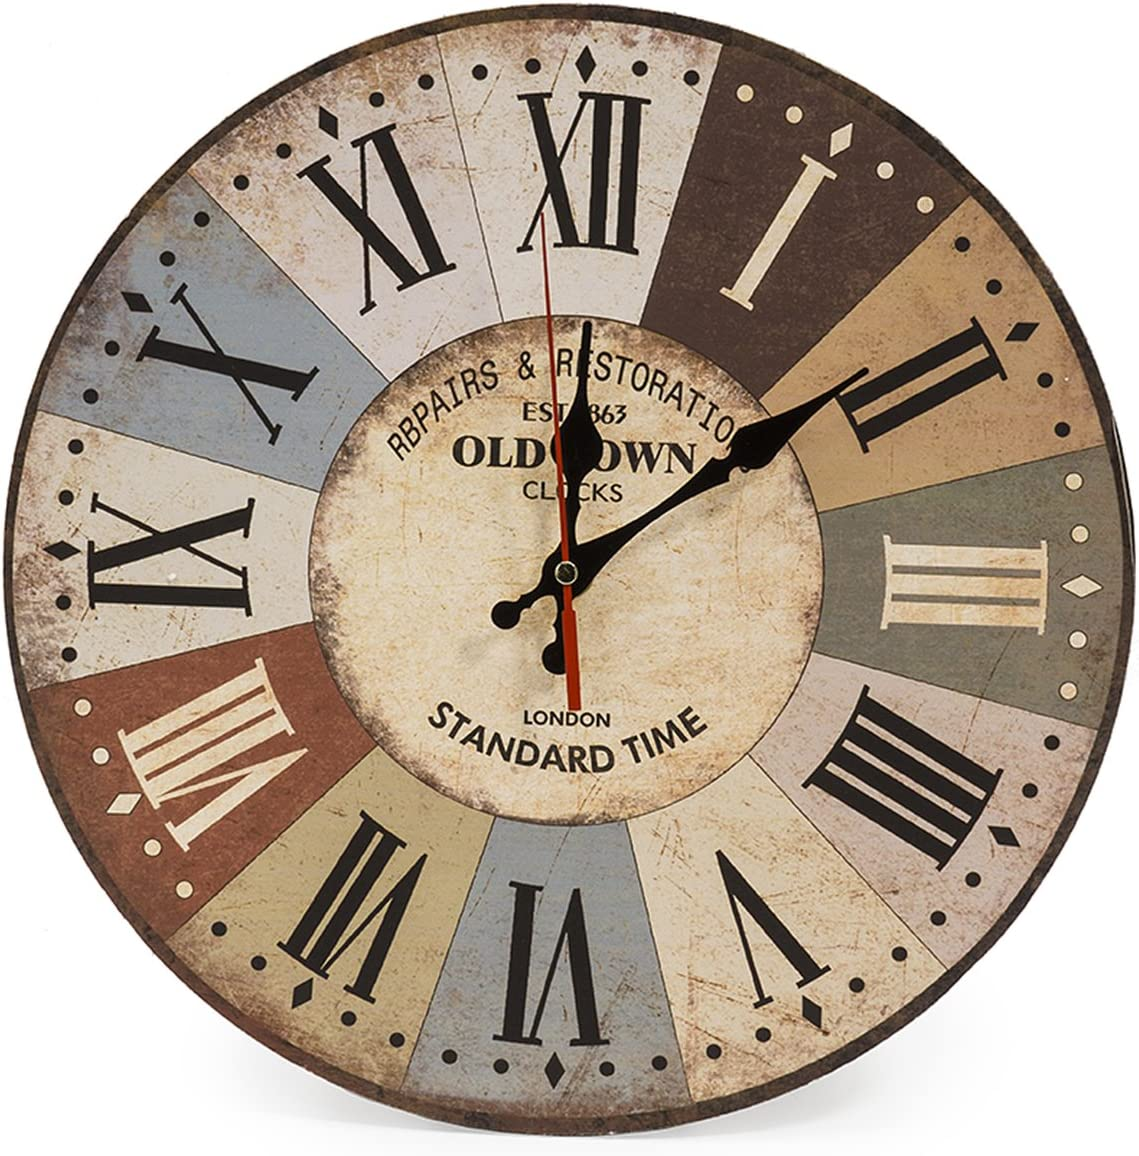 LOHAS Home 12 Inch Retro Wooden Wall Clock Farmhouse Decor Silent Non Ticking Wall Clocks - Quality Quartz Battery Operated - Vintage Rustic Country Style